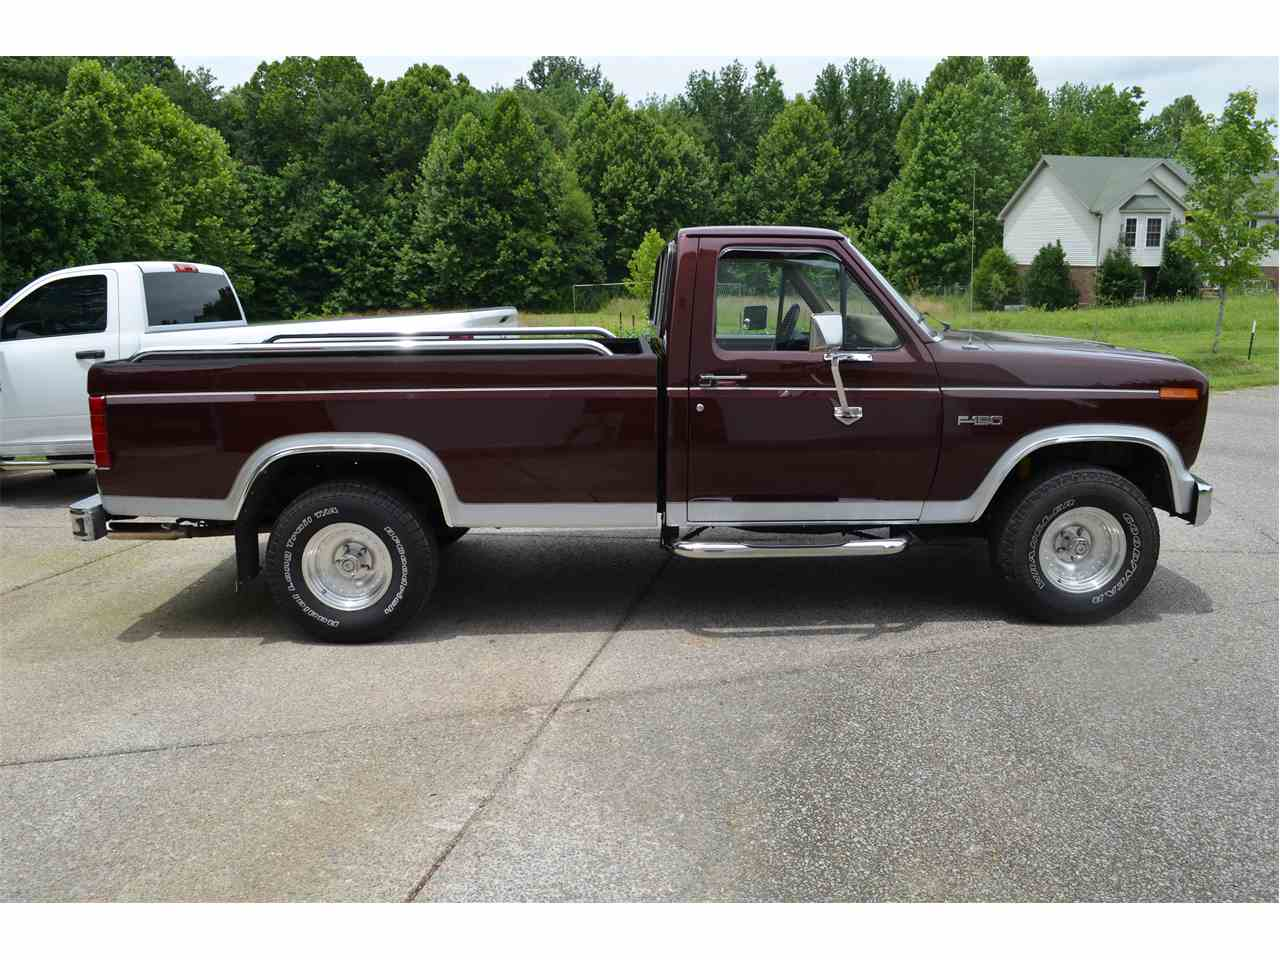 Large Picture of '84 F150 - $8,000.00 Offered by a Private Seller - LAX5